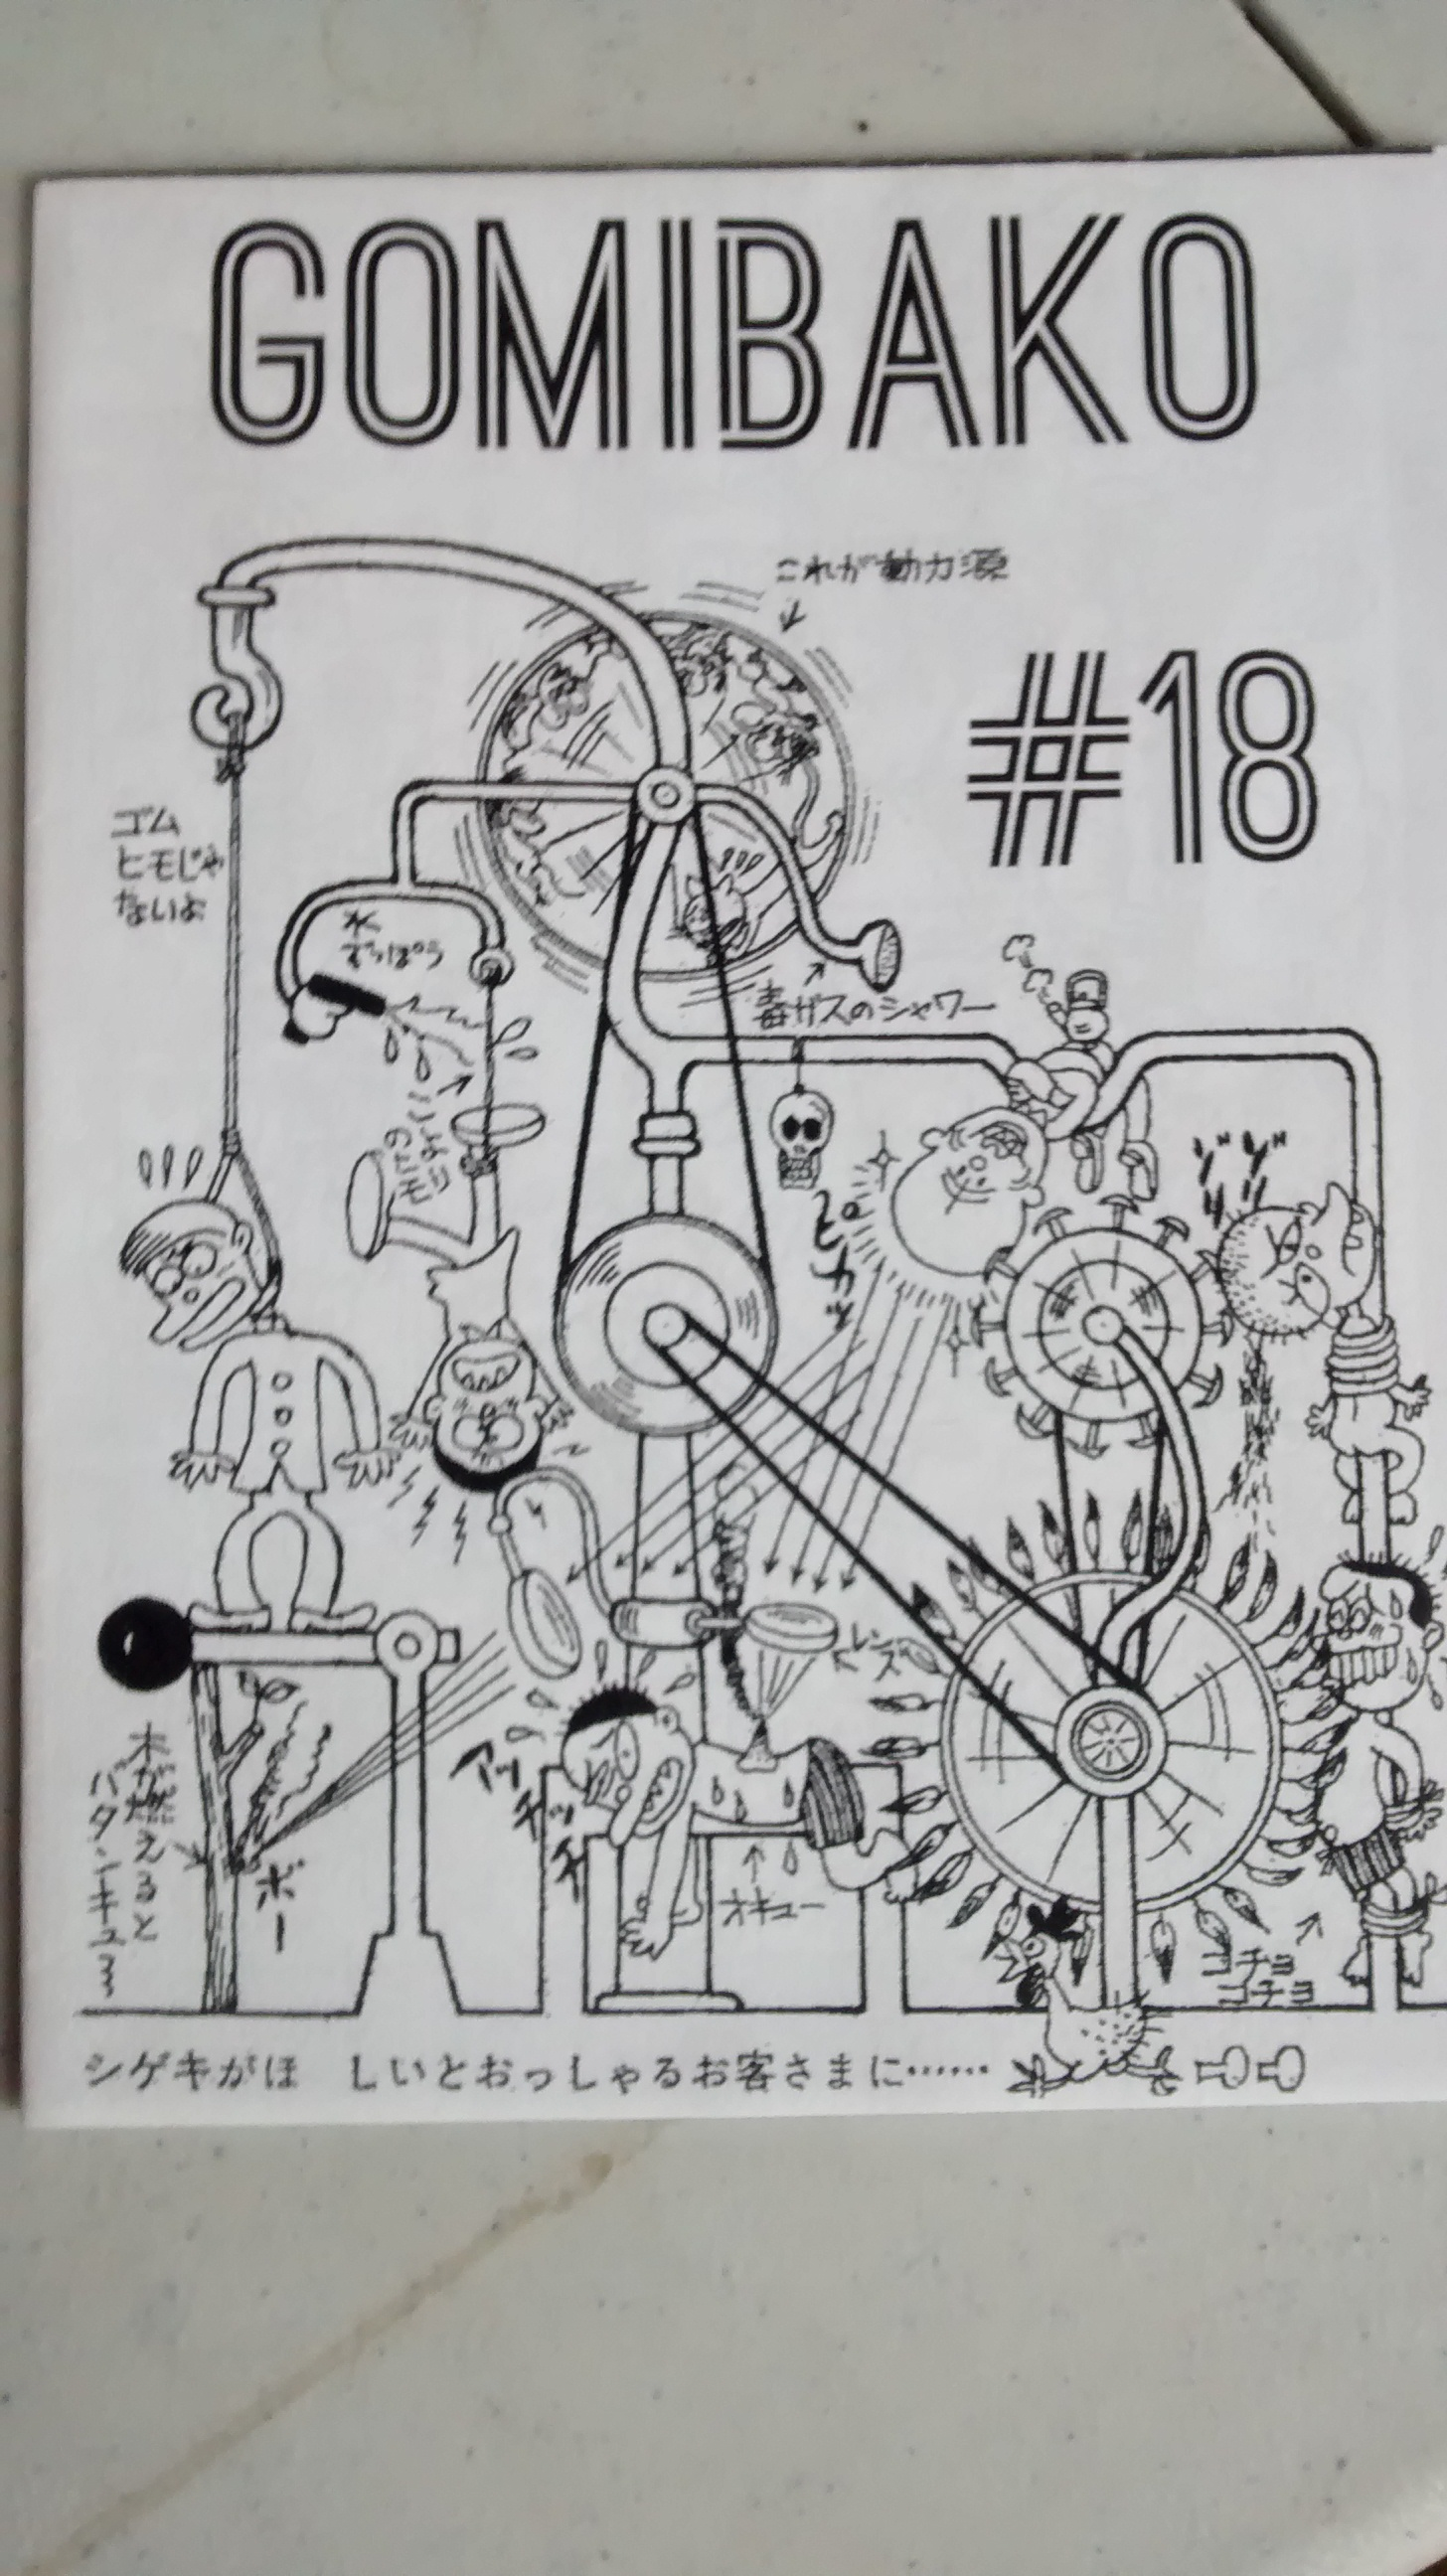 Gomibako #18 cover features a Rube Goldberg-type apparatus of torture, including burns or branding, lashes, head shaving/hitting, electric shocking, and hanging, accompanied by small Japanese script.